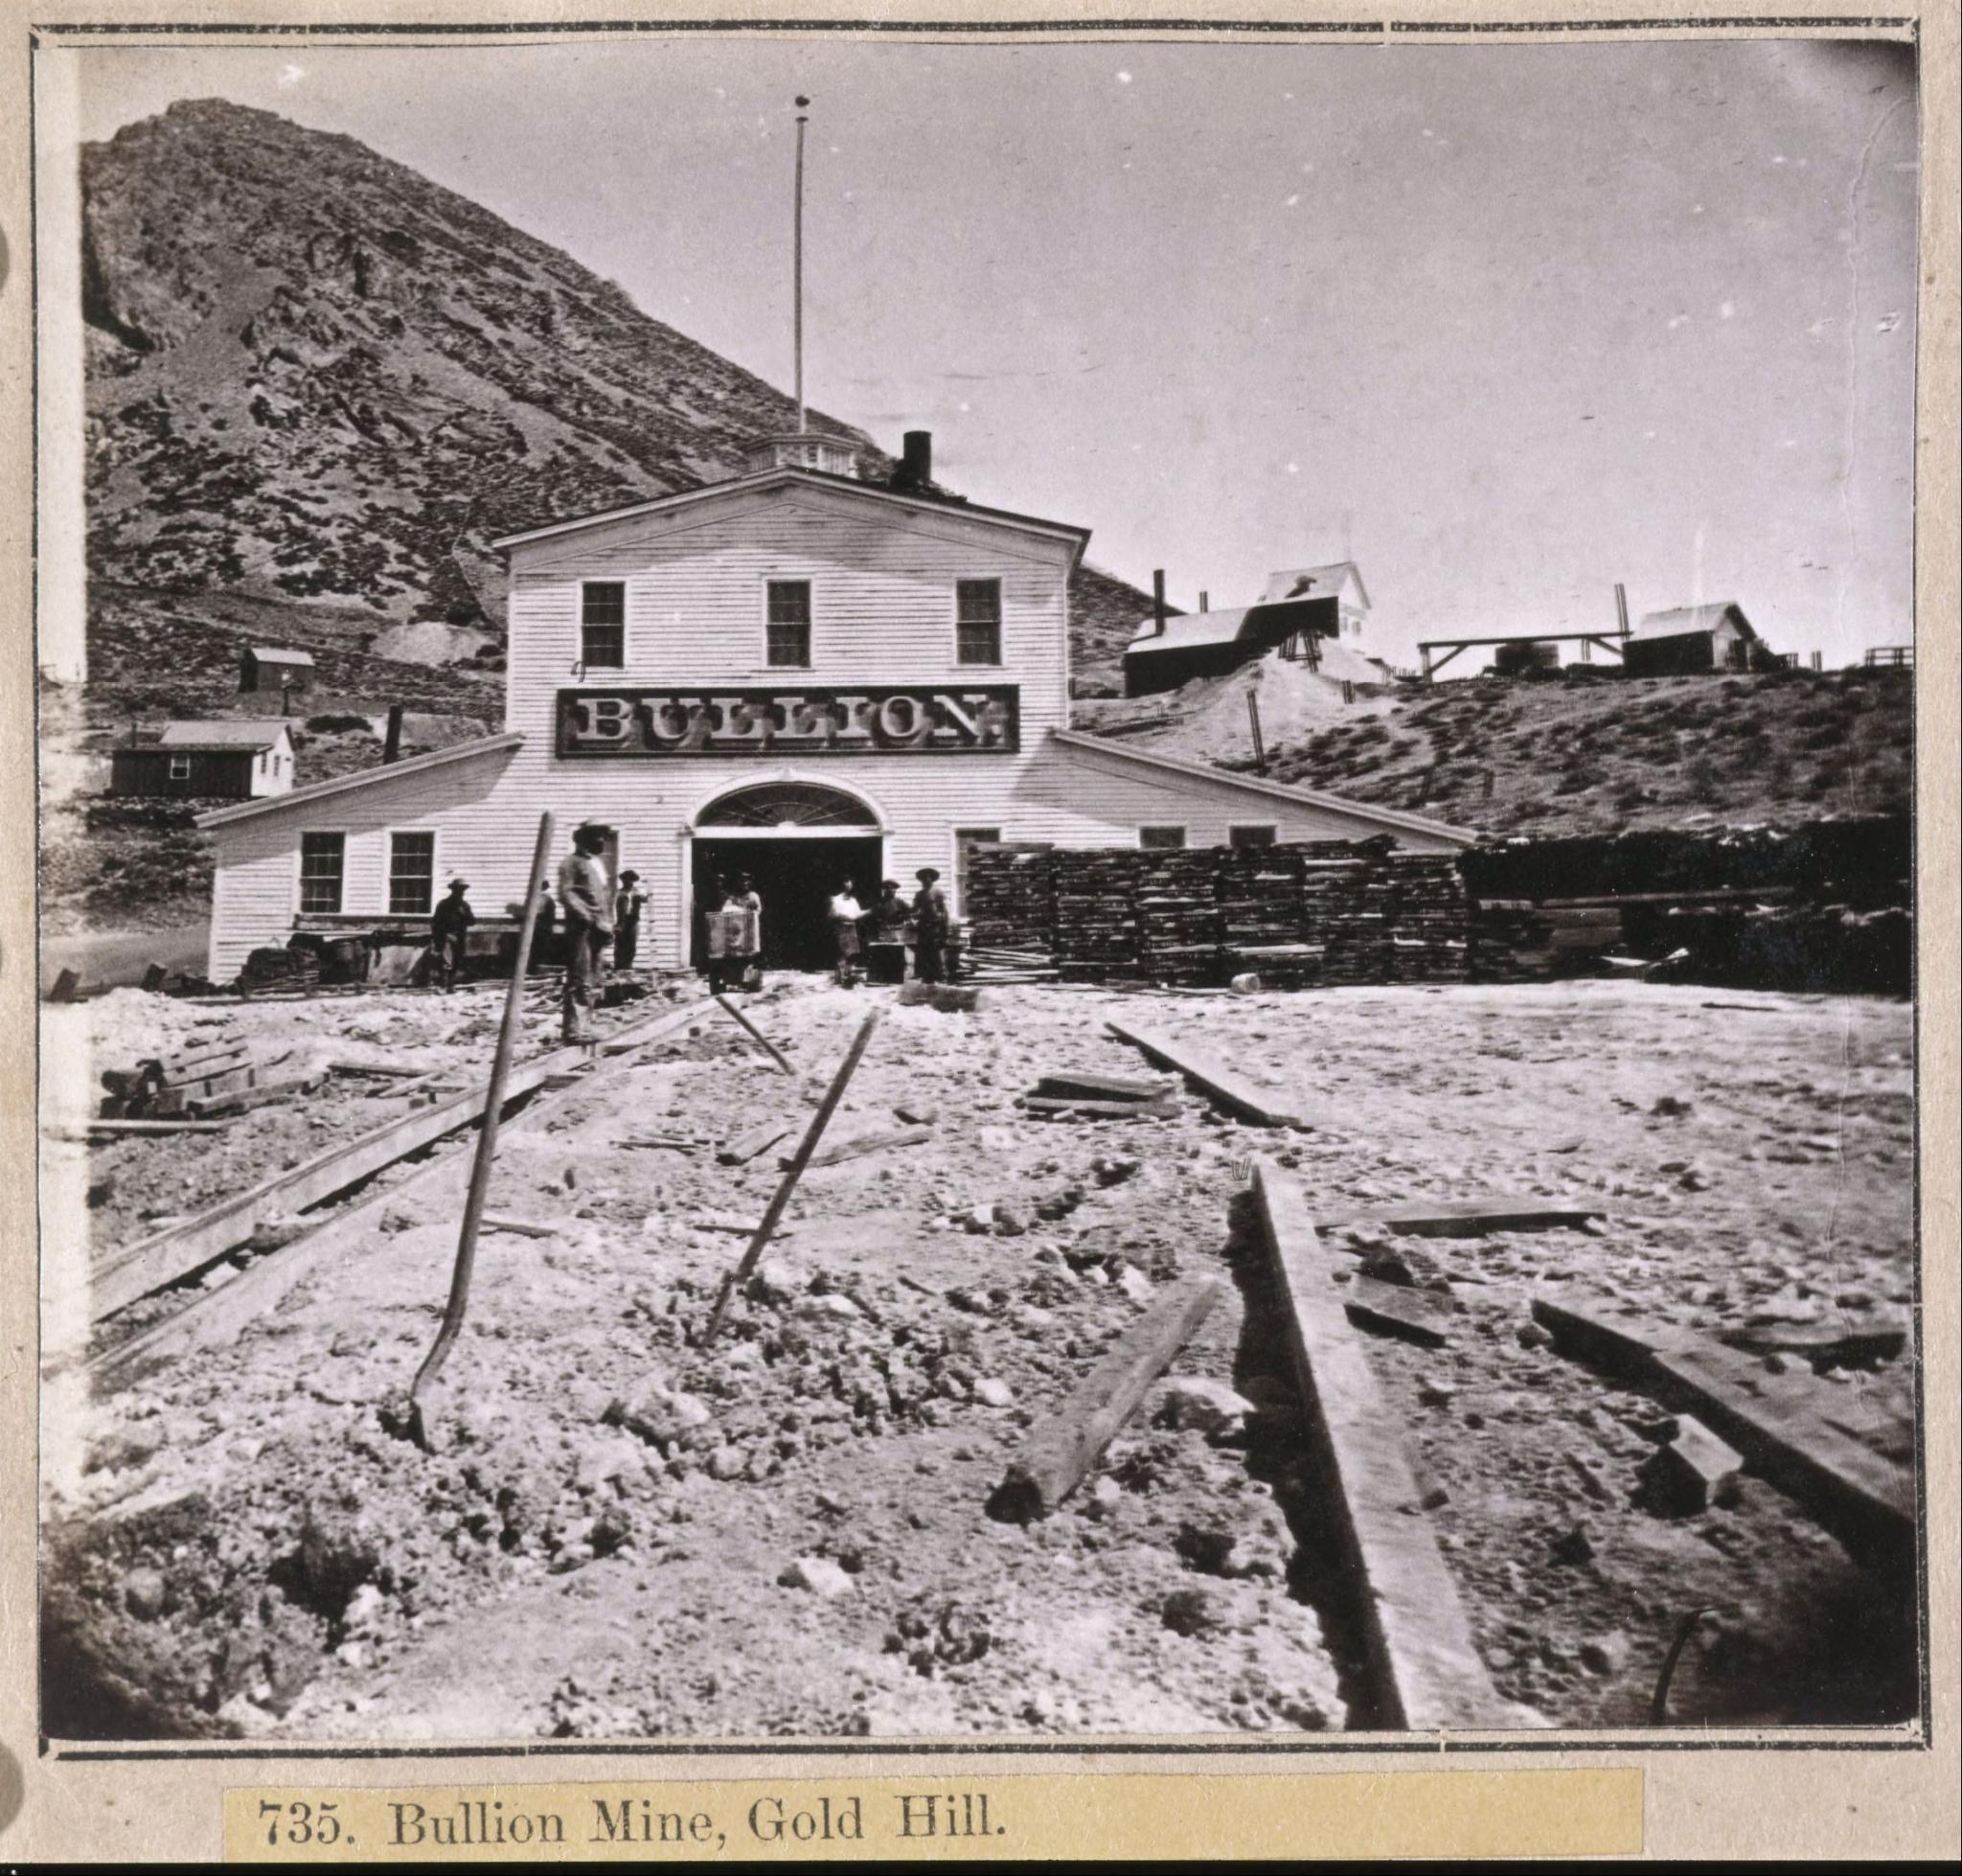 Gold And Silver Mining In Palestine Mail: 735. Bullion Mine, Gold Hill. : Photo Details :: The